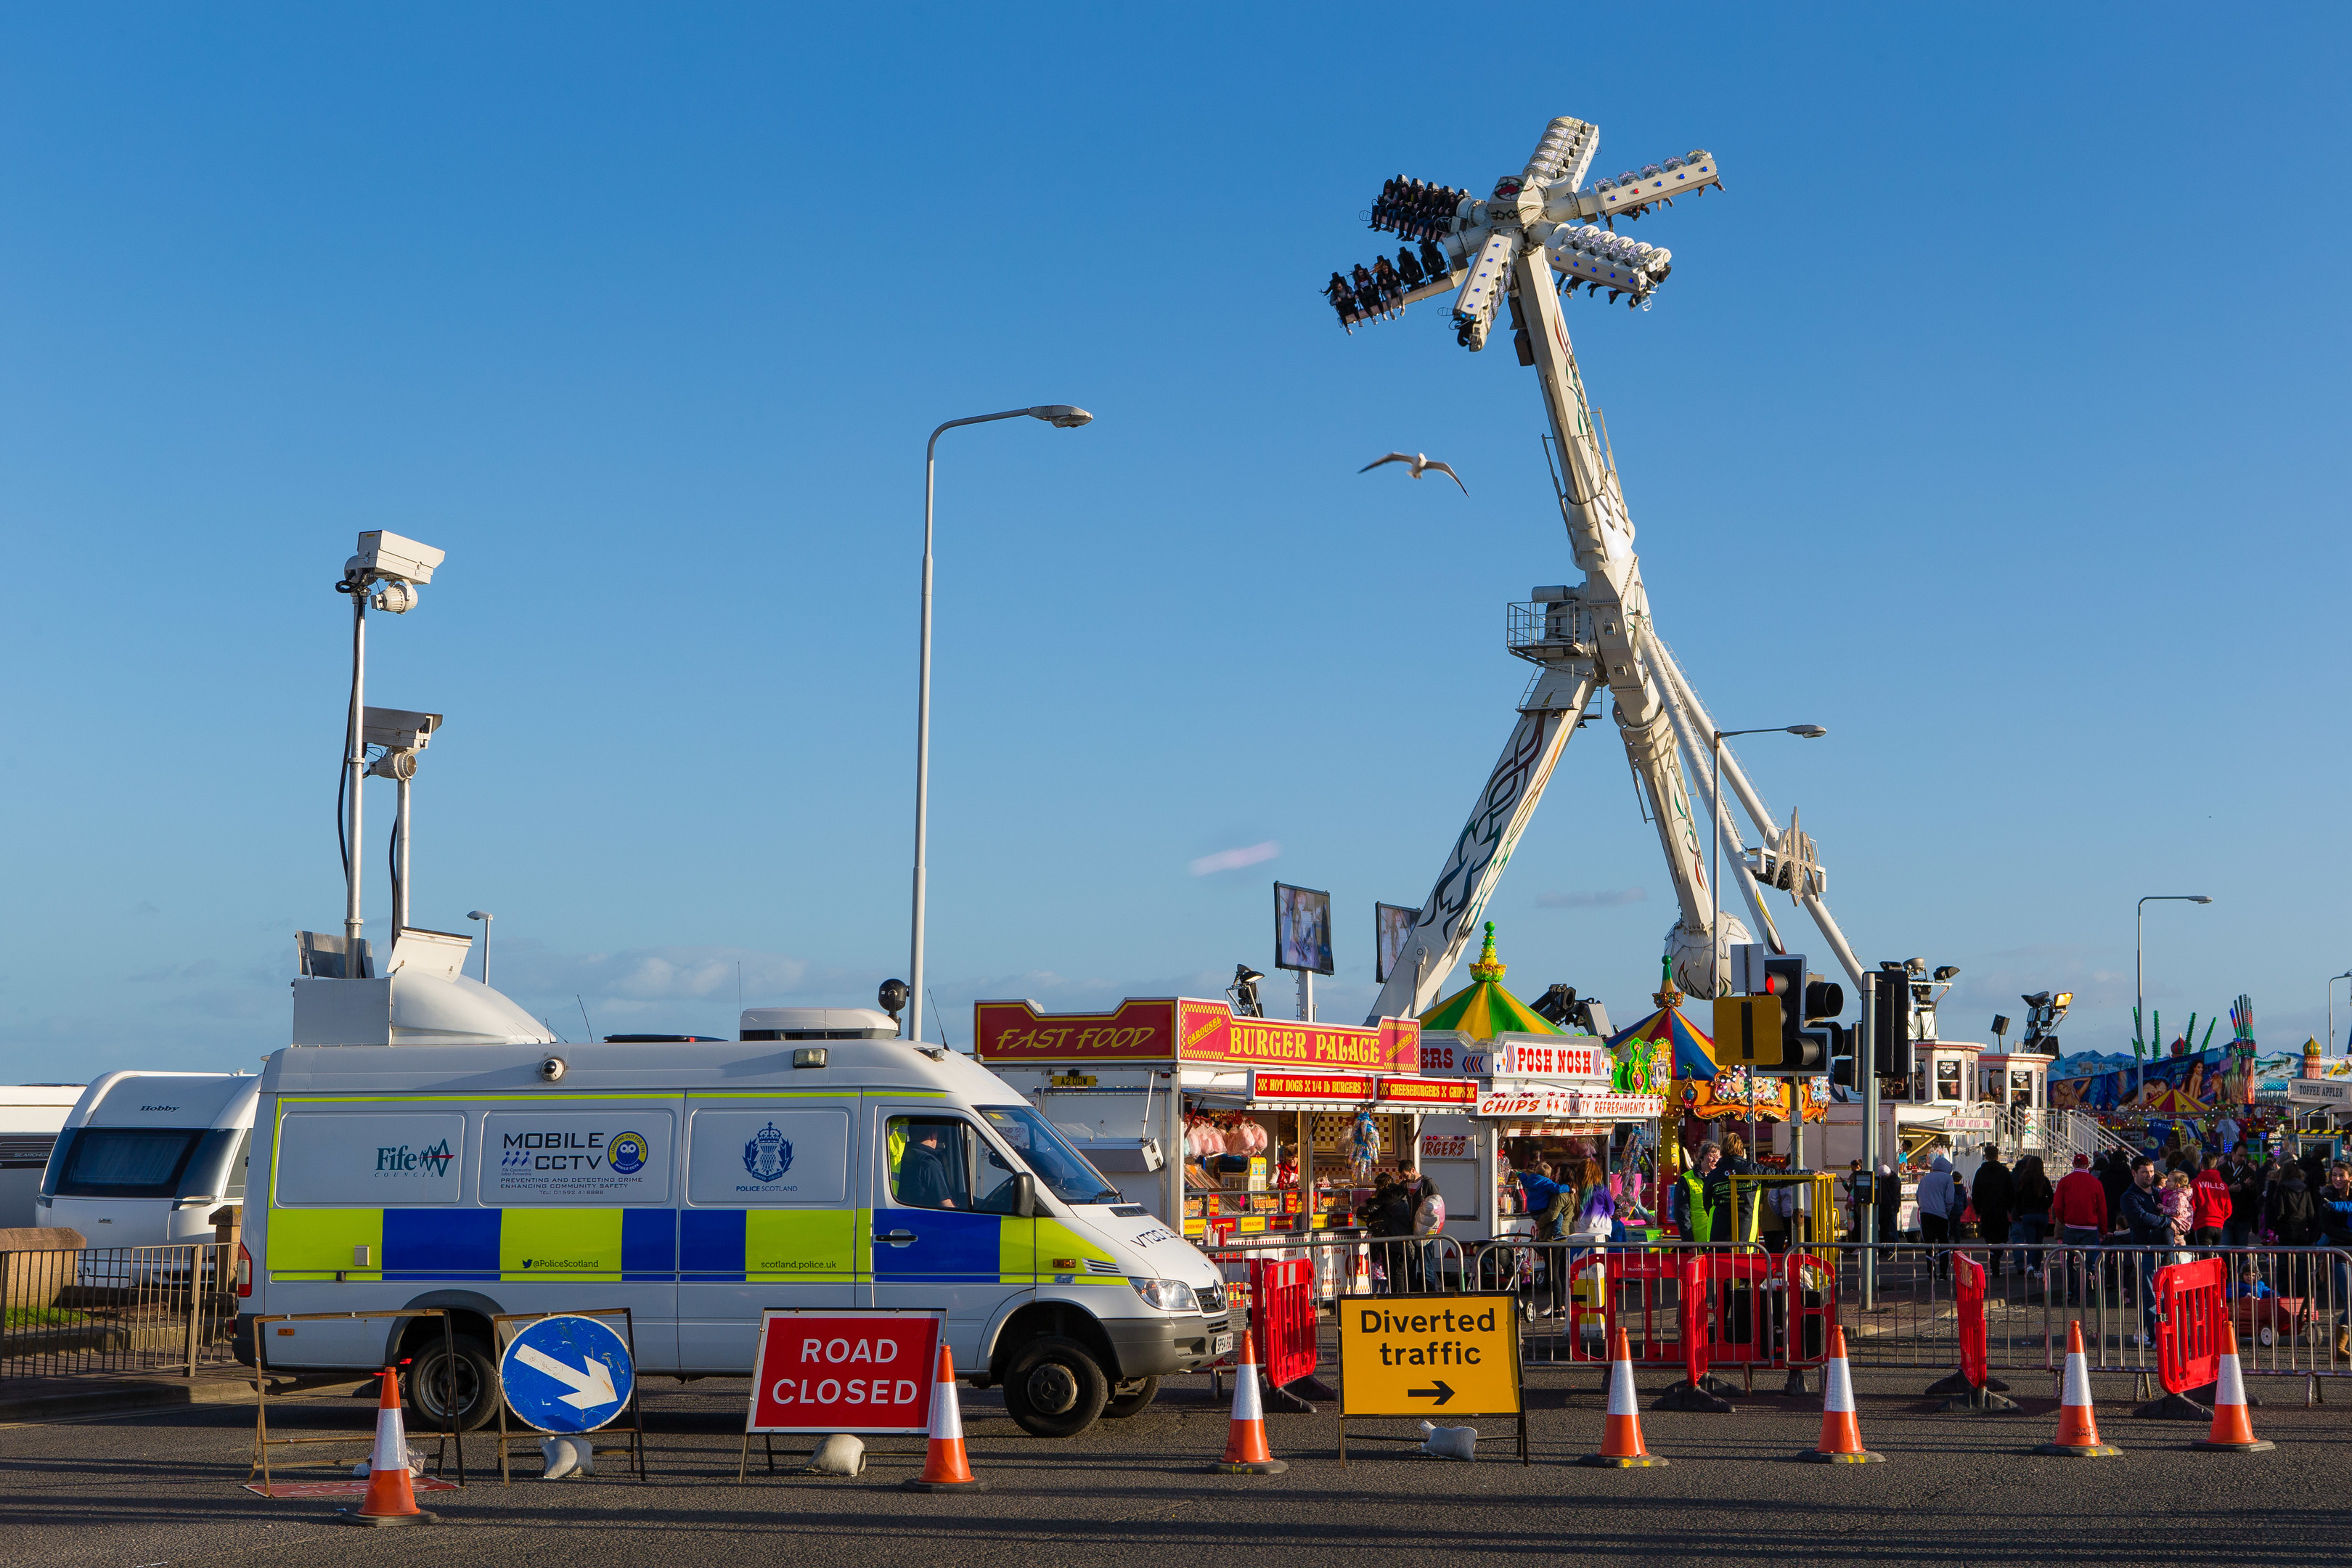 Kirkcaldy's iconic Links Market is in town and with improved security and crowd monitoring and safety is in place to ensure that everyone has a great time at the traditional travelling fairground.